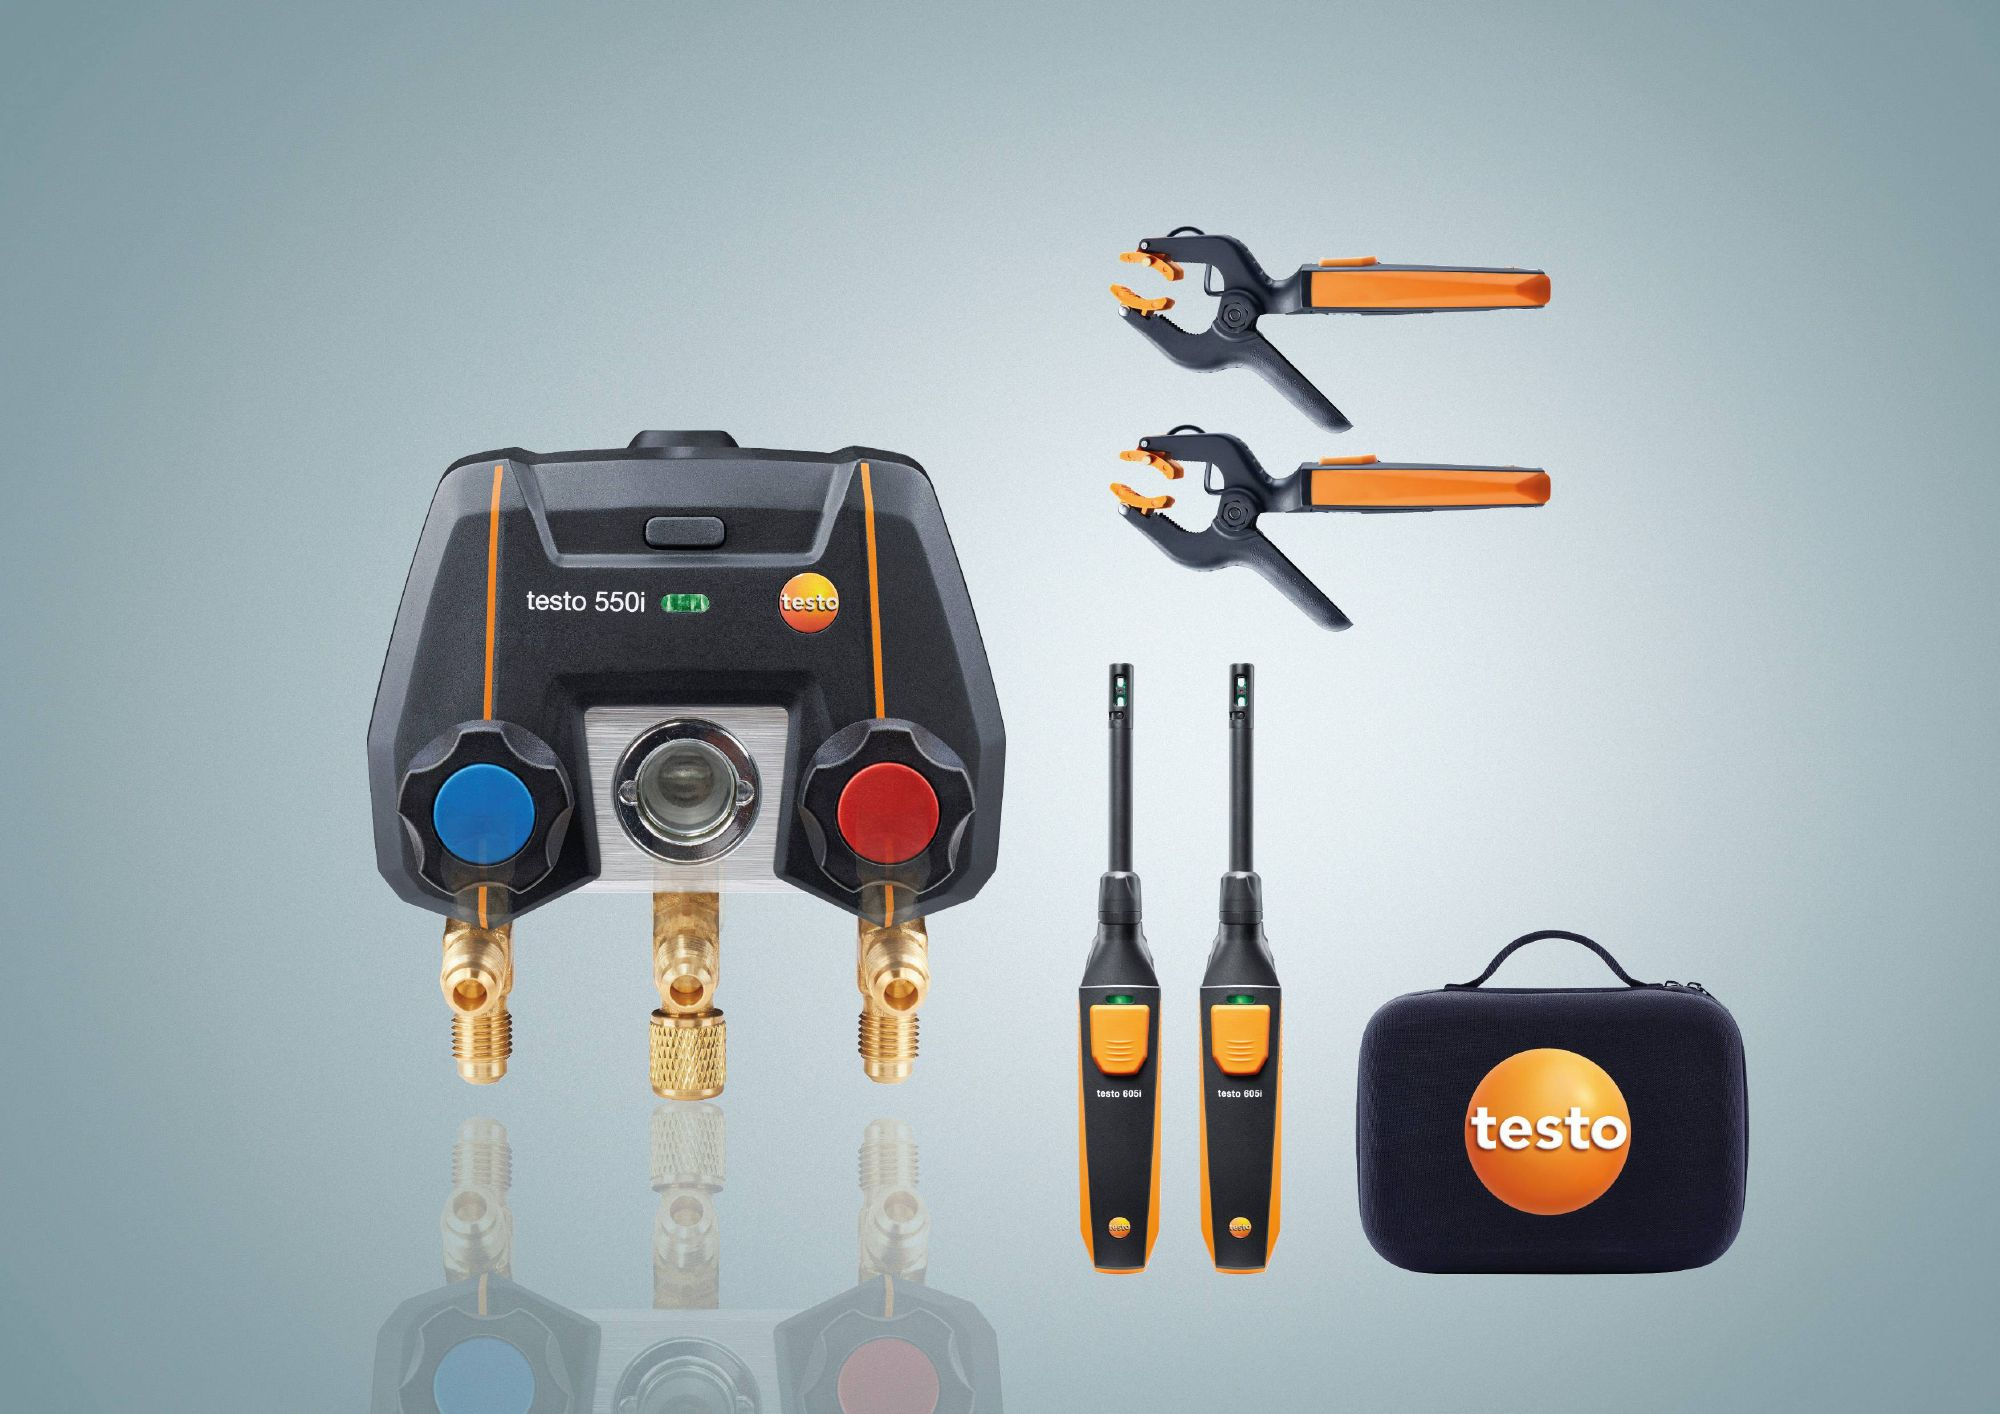 testo 550i Smart Kit - App operated Manifold with wireless temperature probes / micron gauge / thermohygrometers